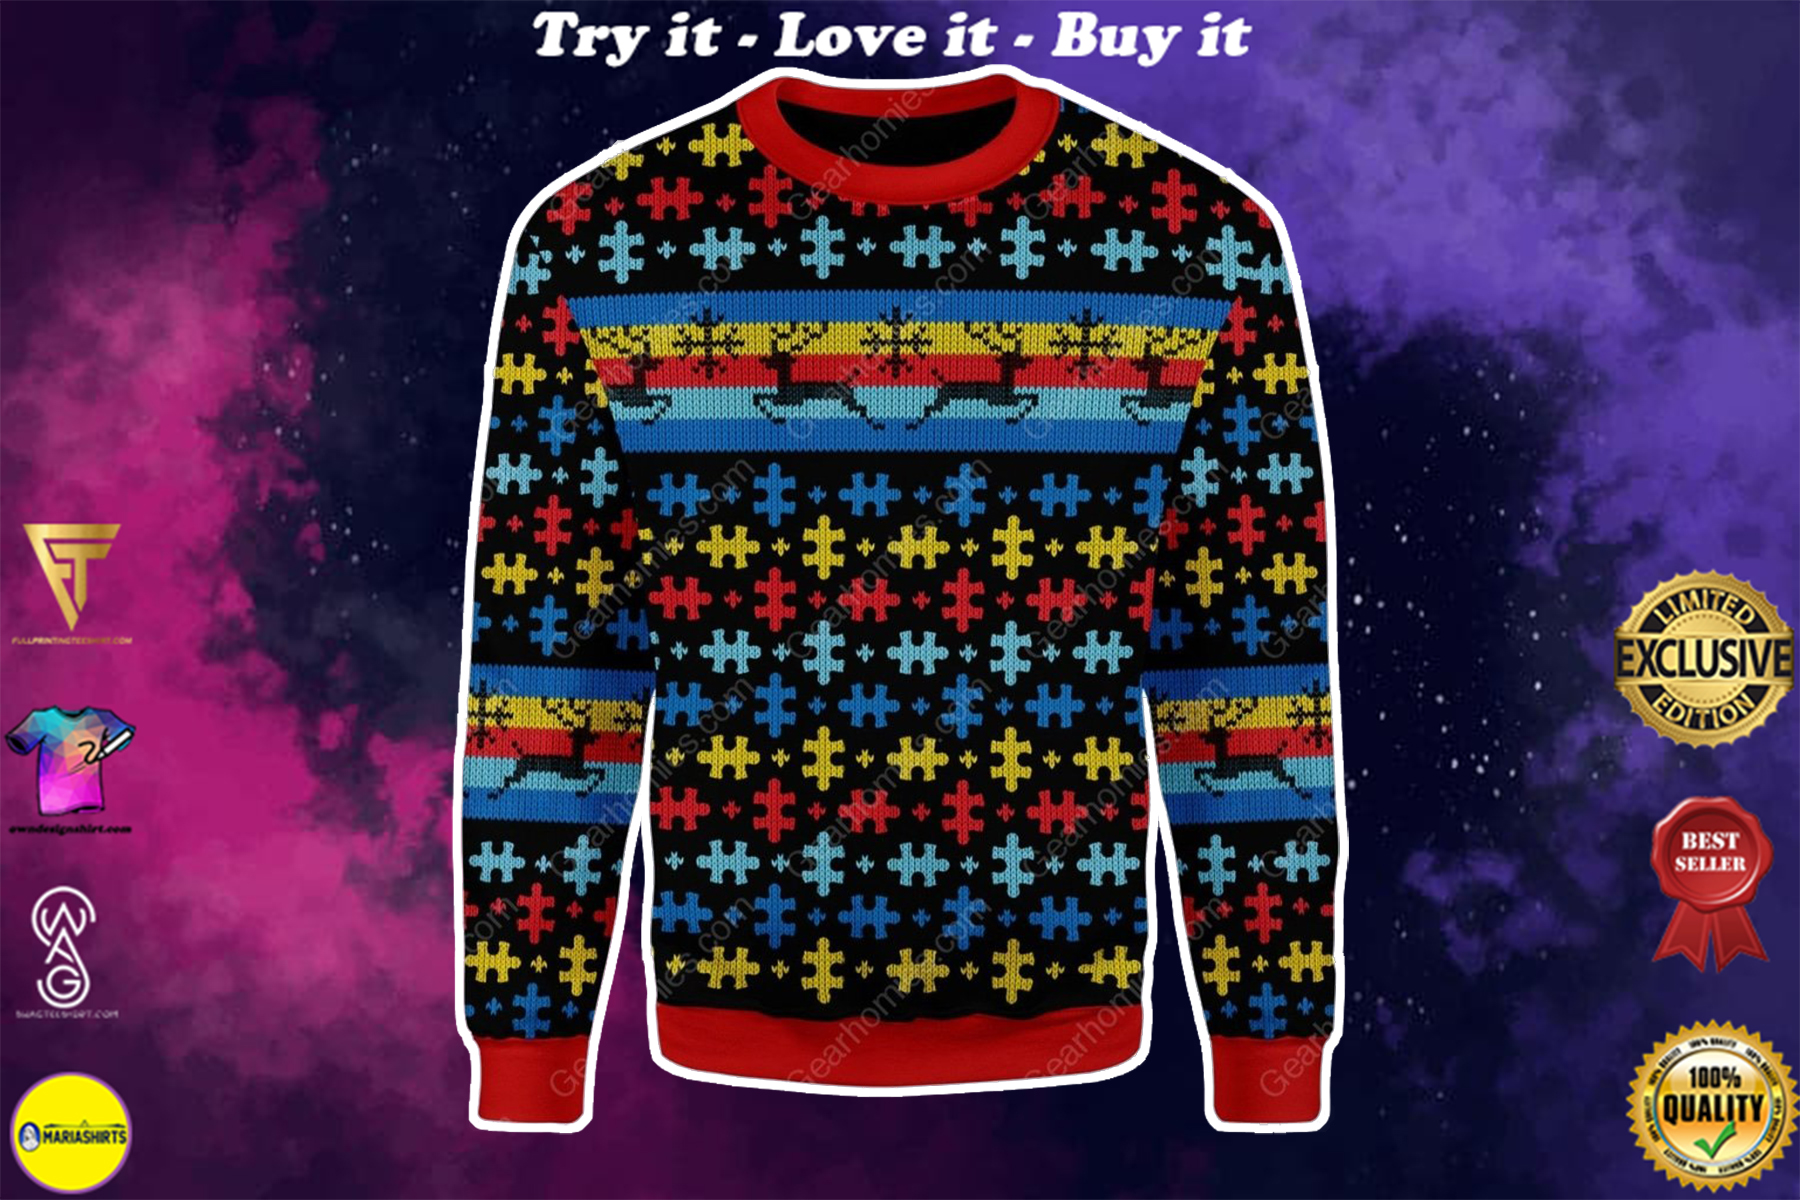 [special edition] autism awareness reindeer all over printed ugly christmas sweater - maria